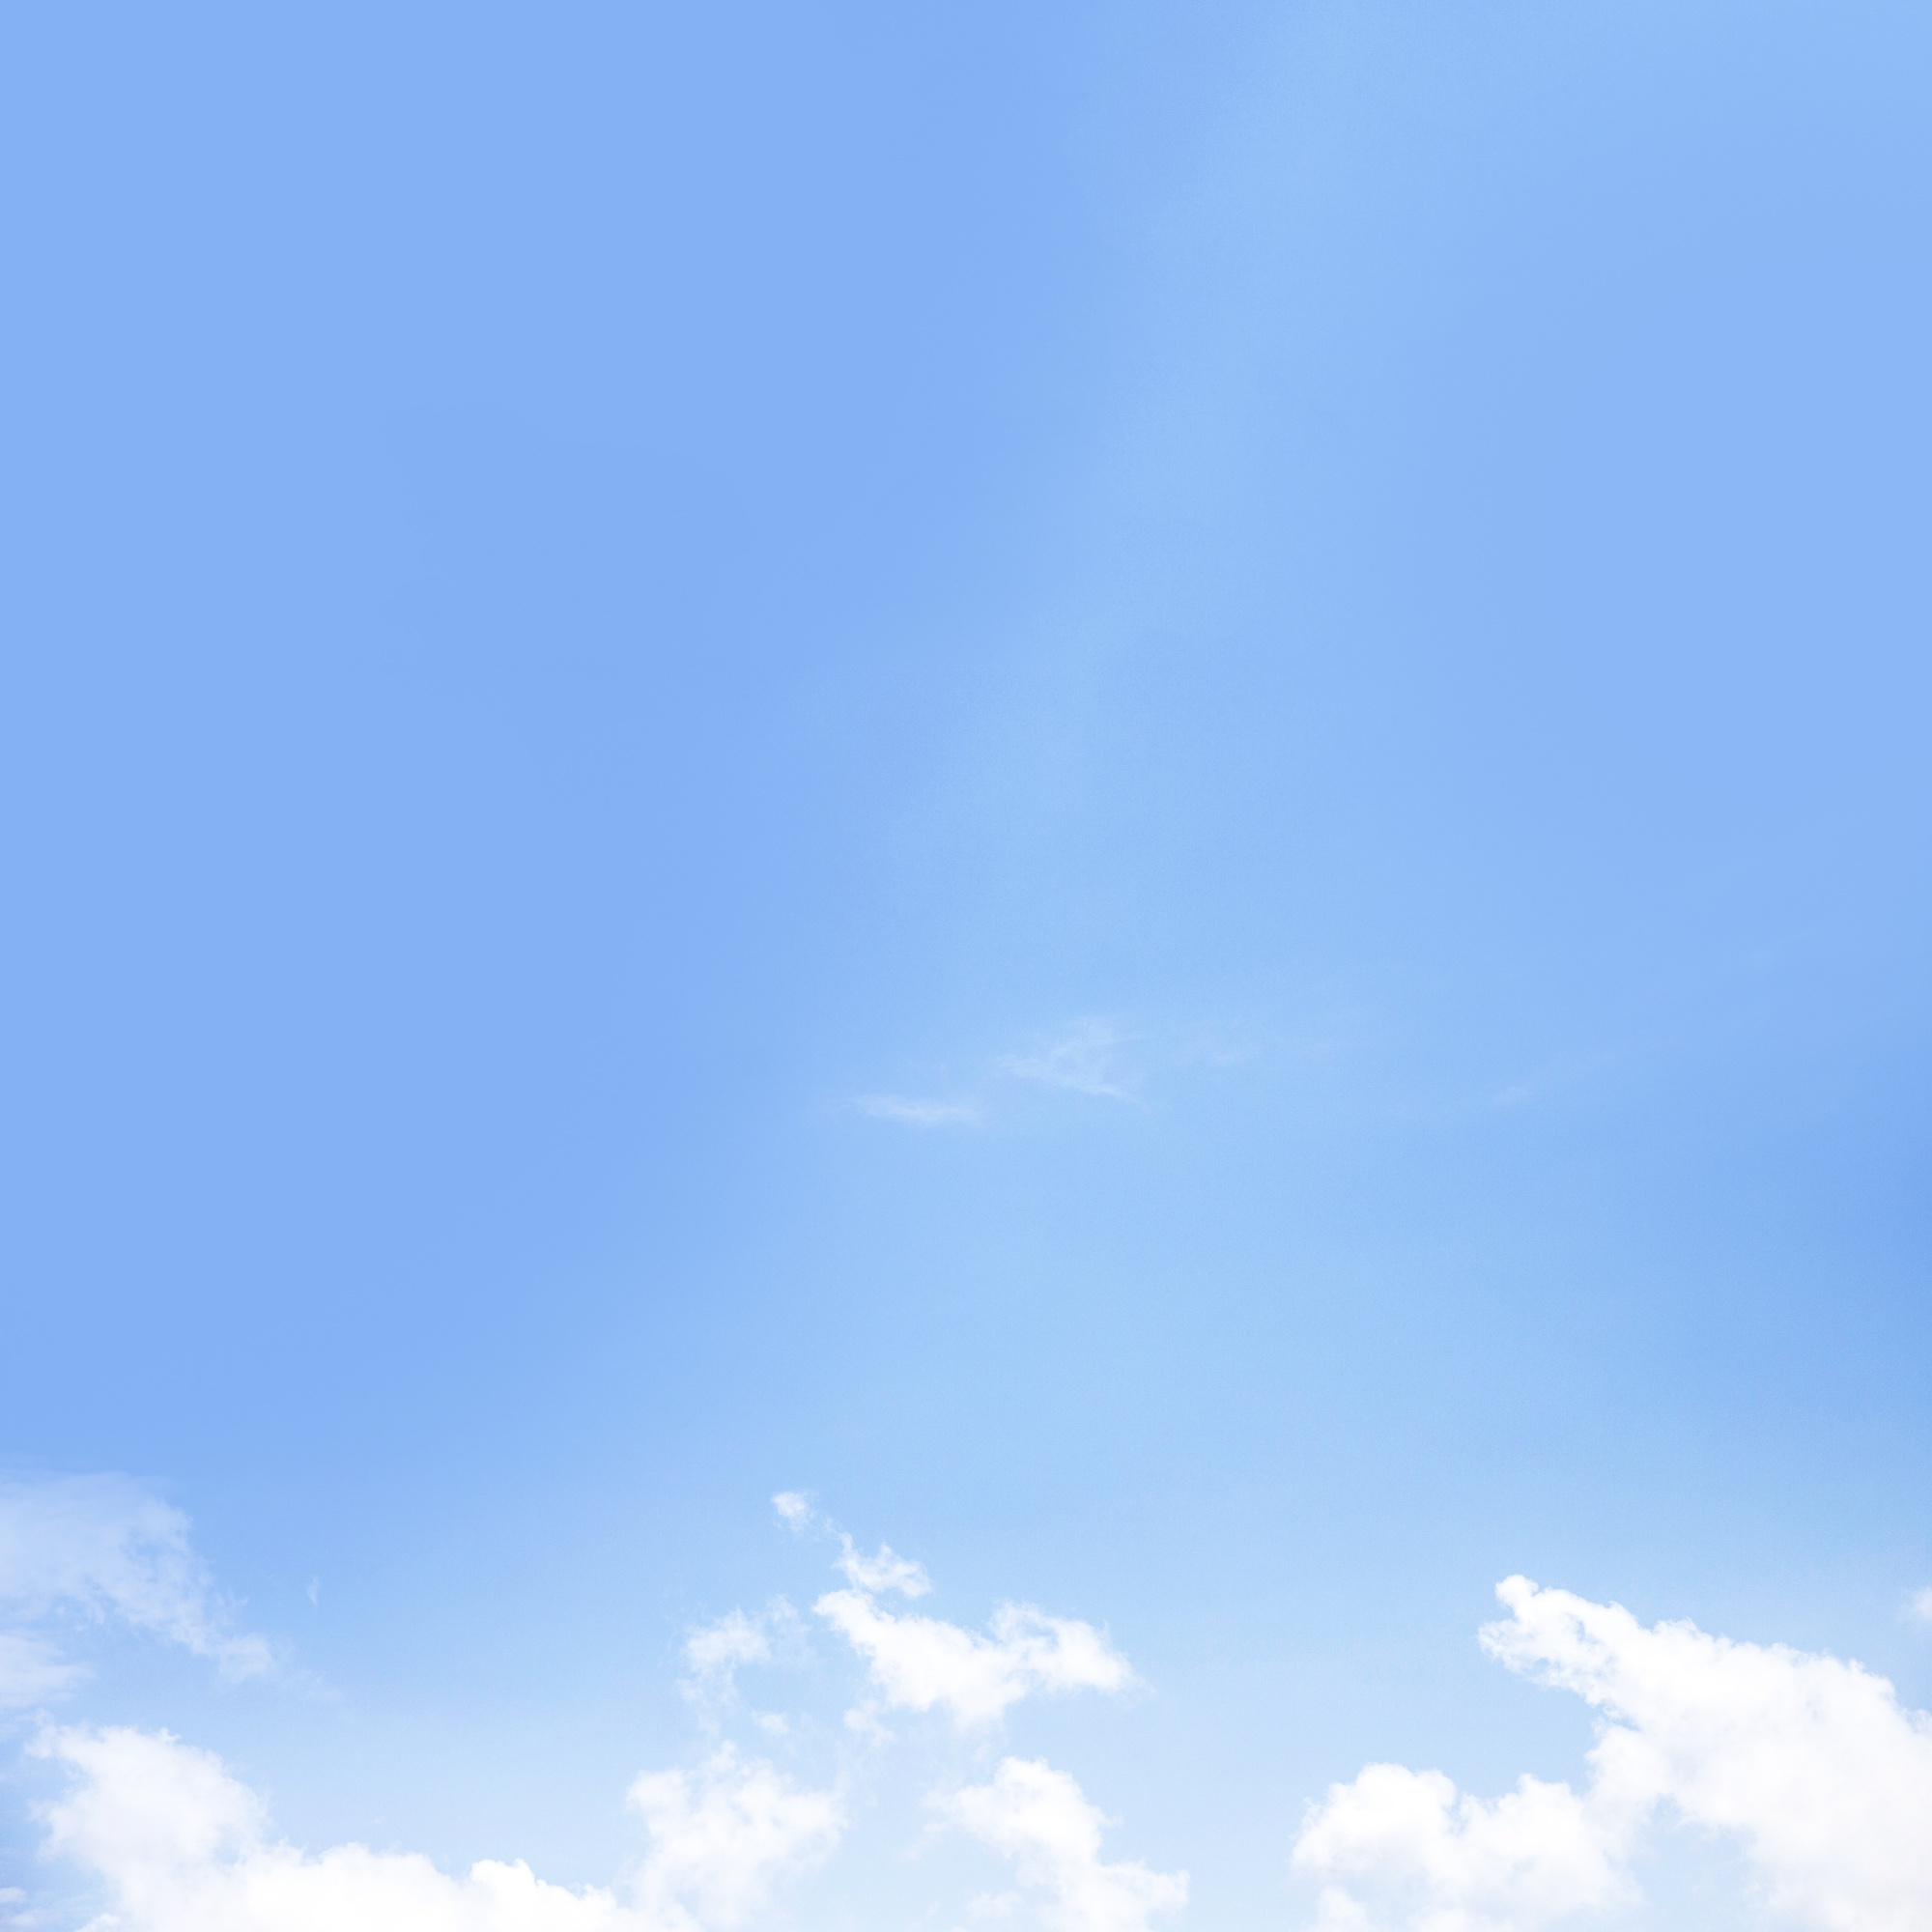 Scenics view of blue sky with white clouds